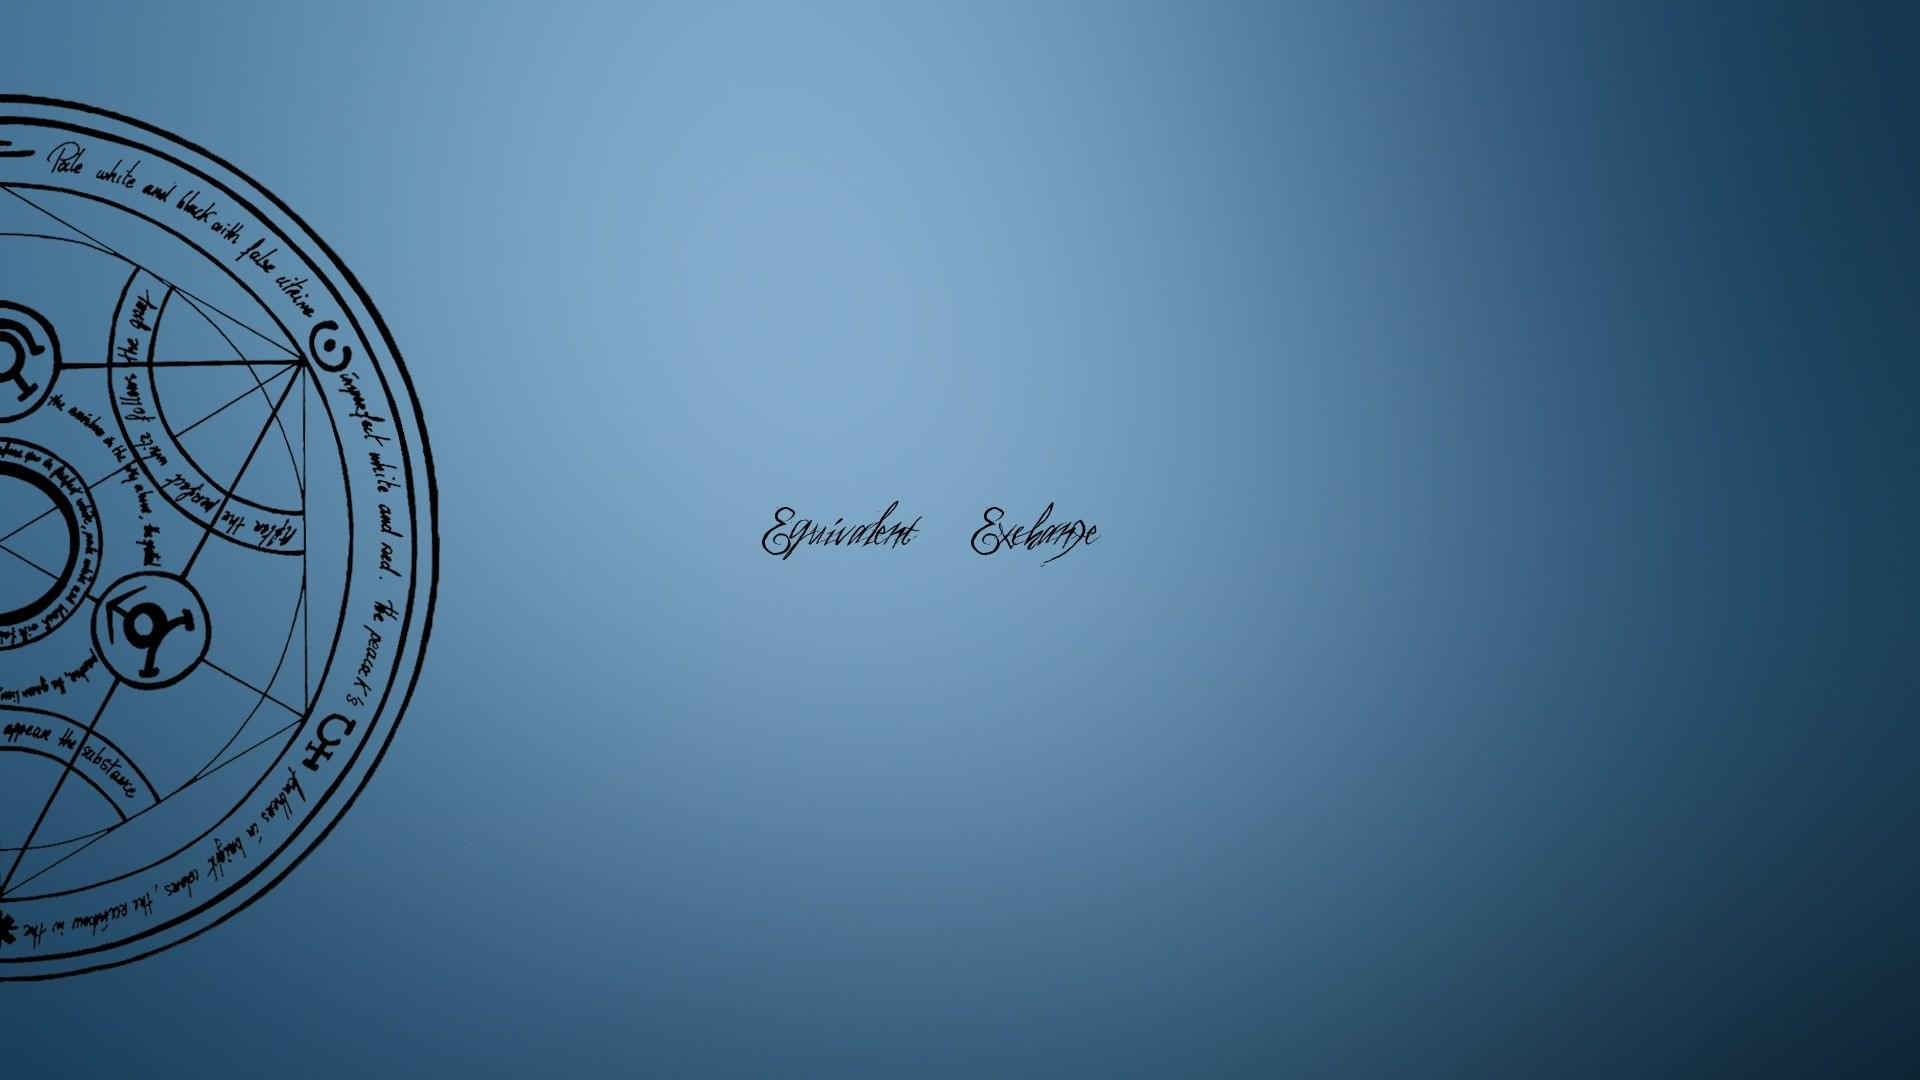 Res: 1920x1080, ... Large Fullmetal Alchemist Pictures, Photos | Fullmetal Alchemist 100%  Quality HD Backgrounds ...